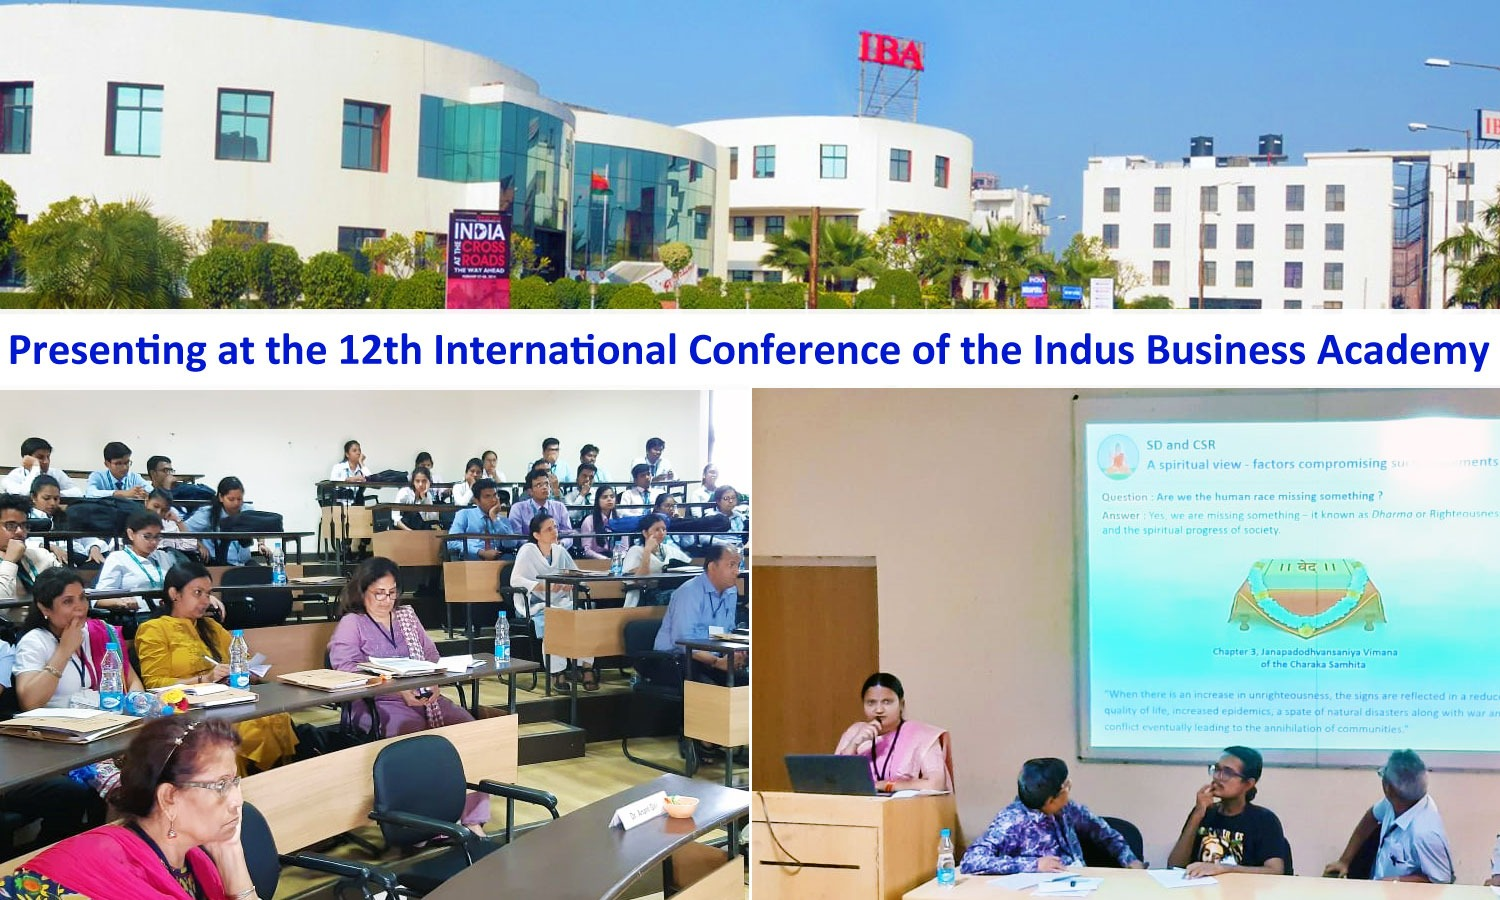 Presenting at the 12th International Conference of the Indus Business Academy